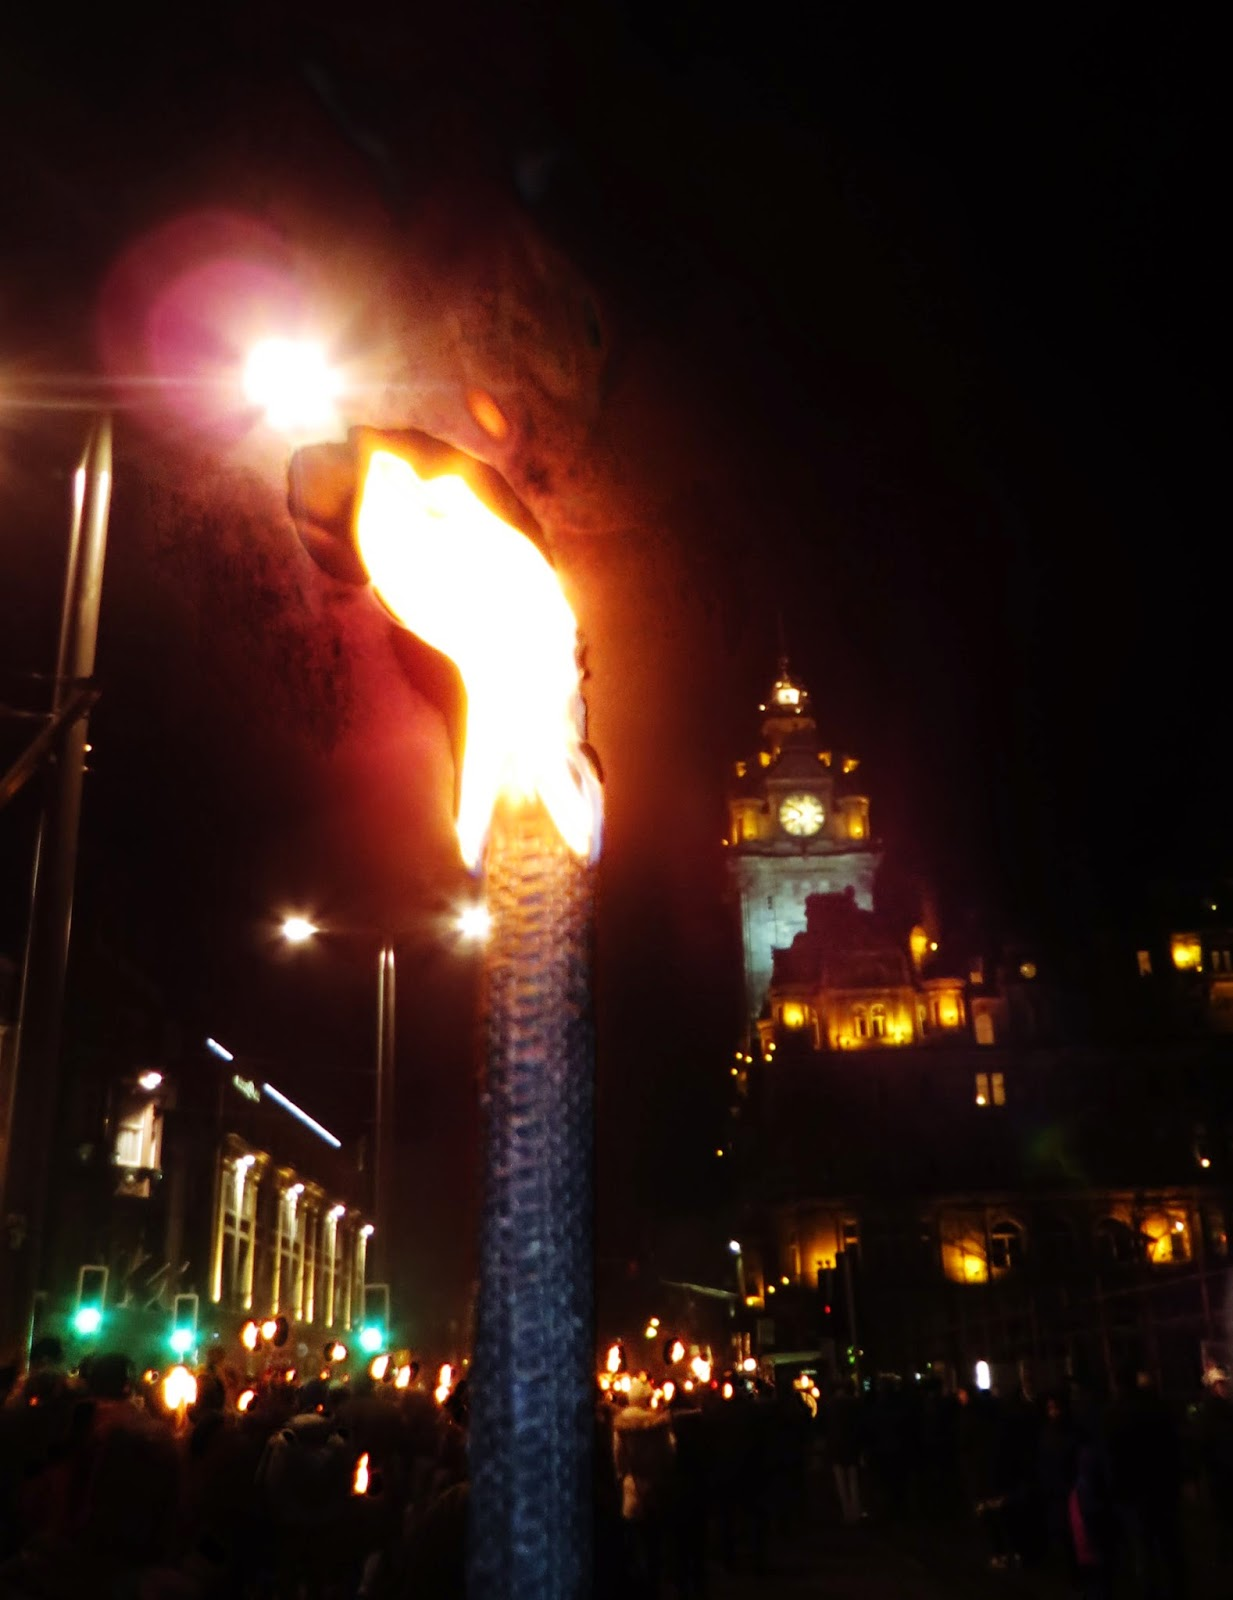 Hogmanay, Torchlight Procession, Edinburgh, Scotland, Things to do, Must do, Travel New Years, Torch, Flame, Fire